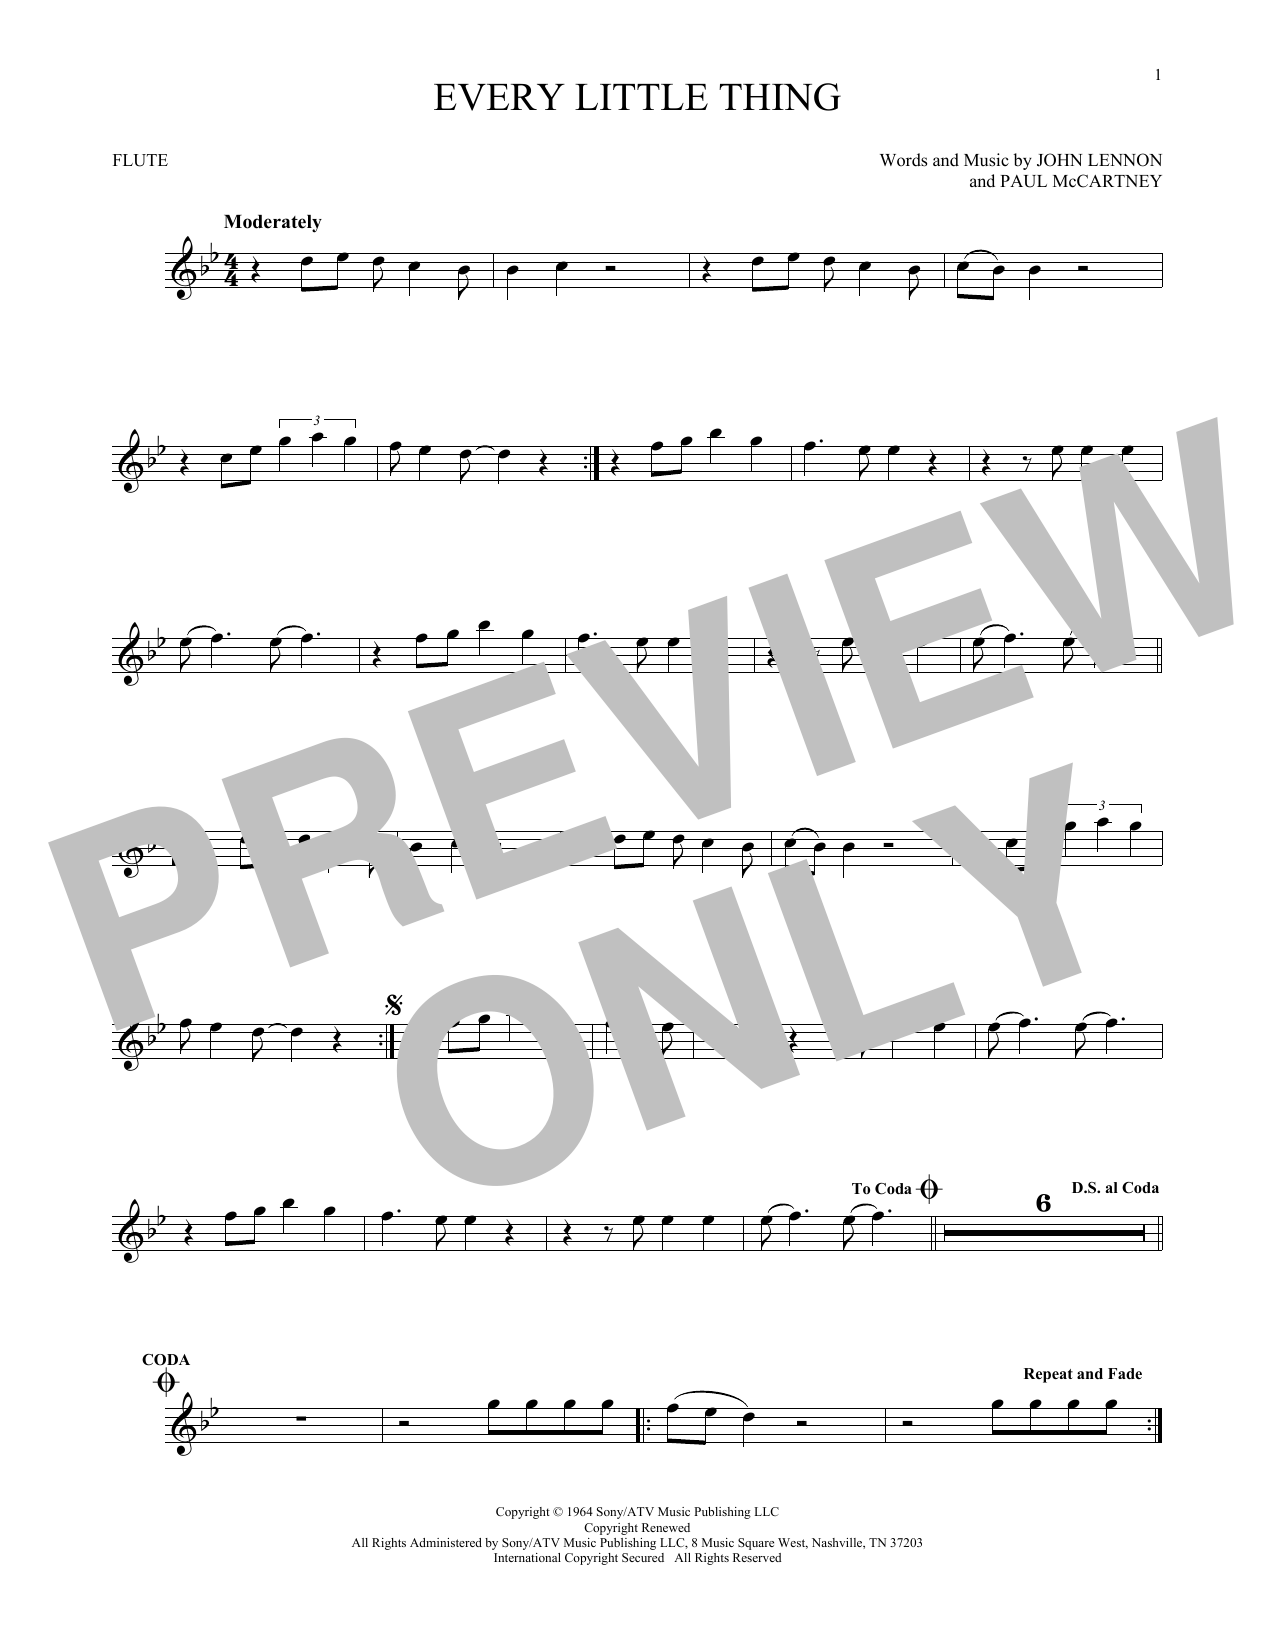 Every Little Thing (Flute Solo)